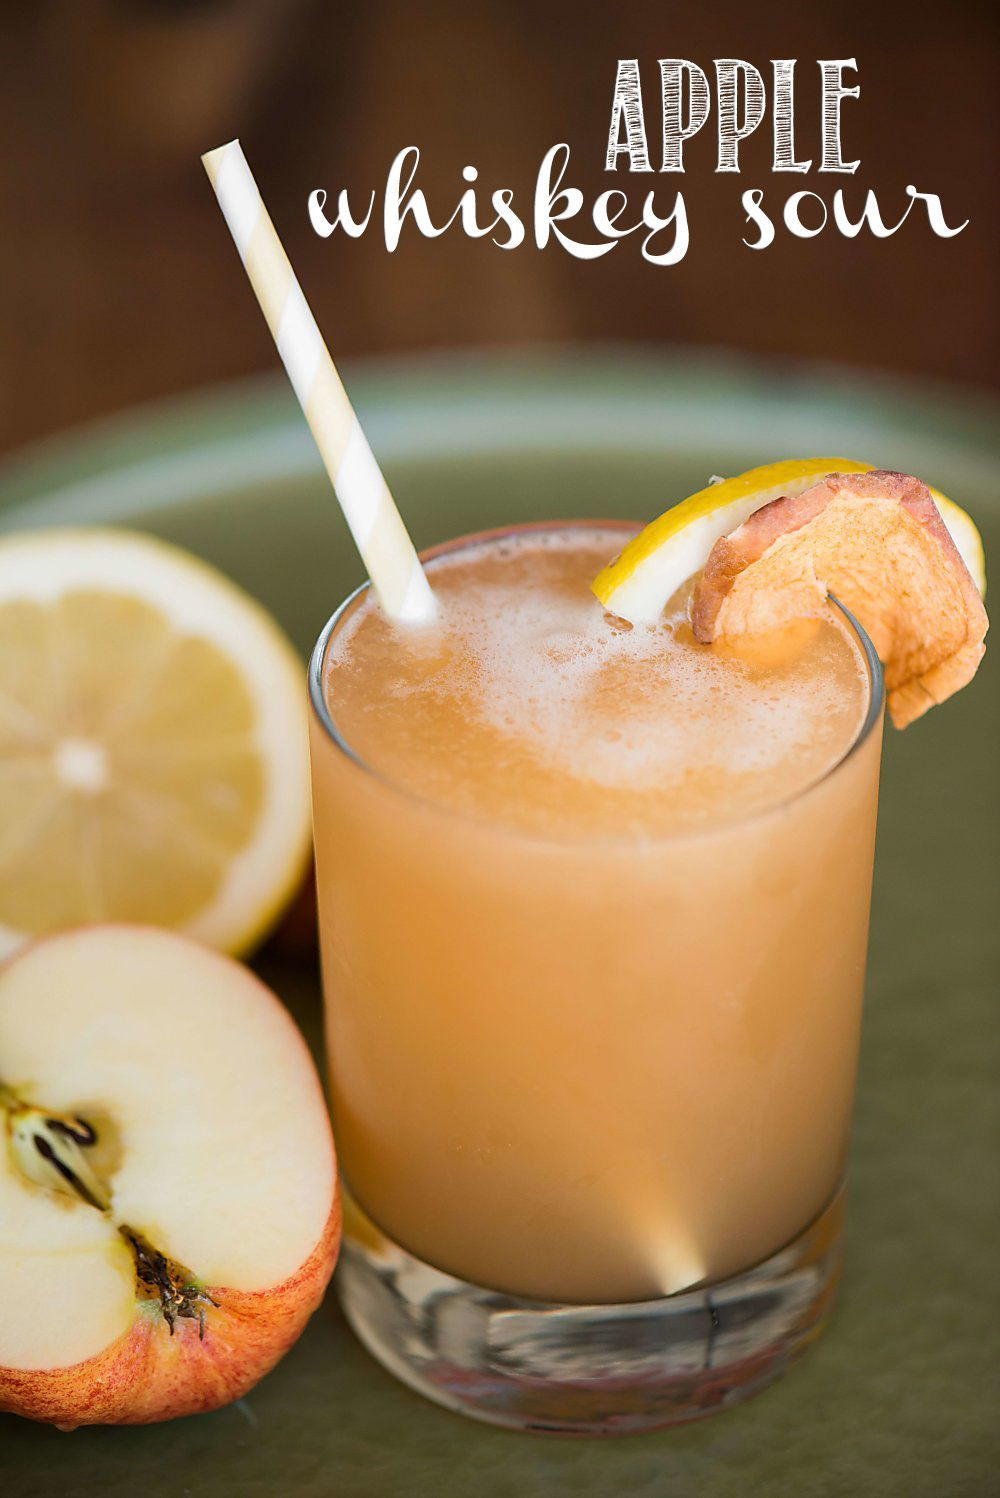 Juice in the juice from apples is a tasty drink for the winter